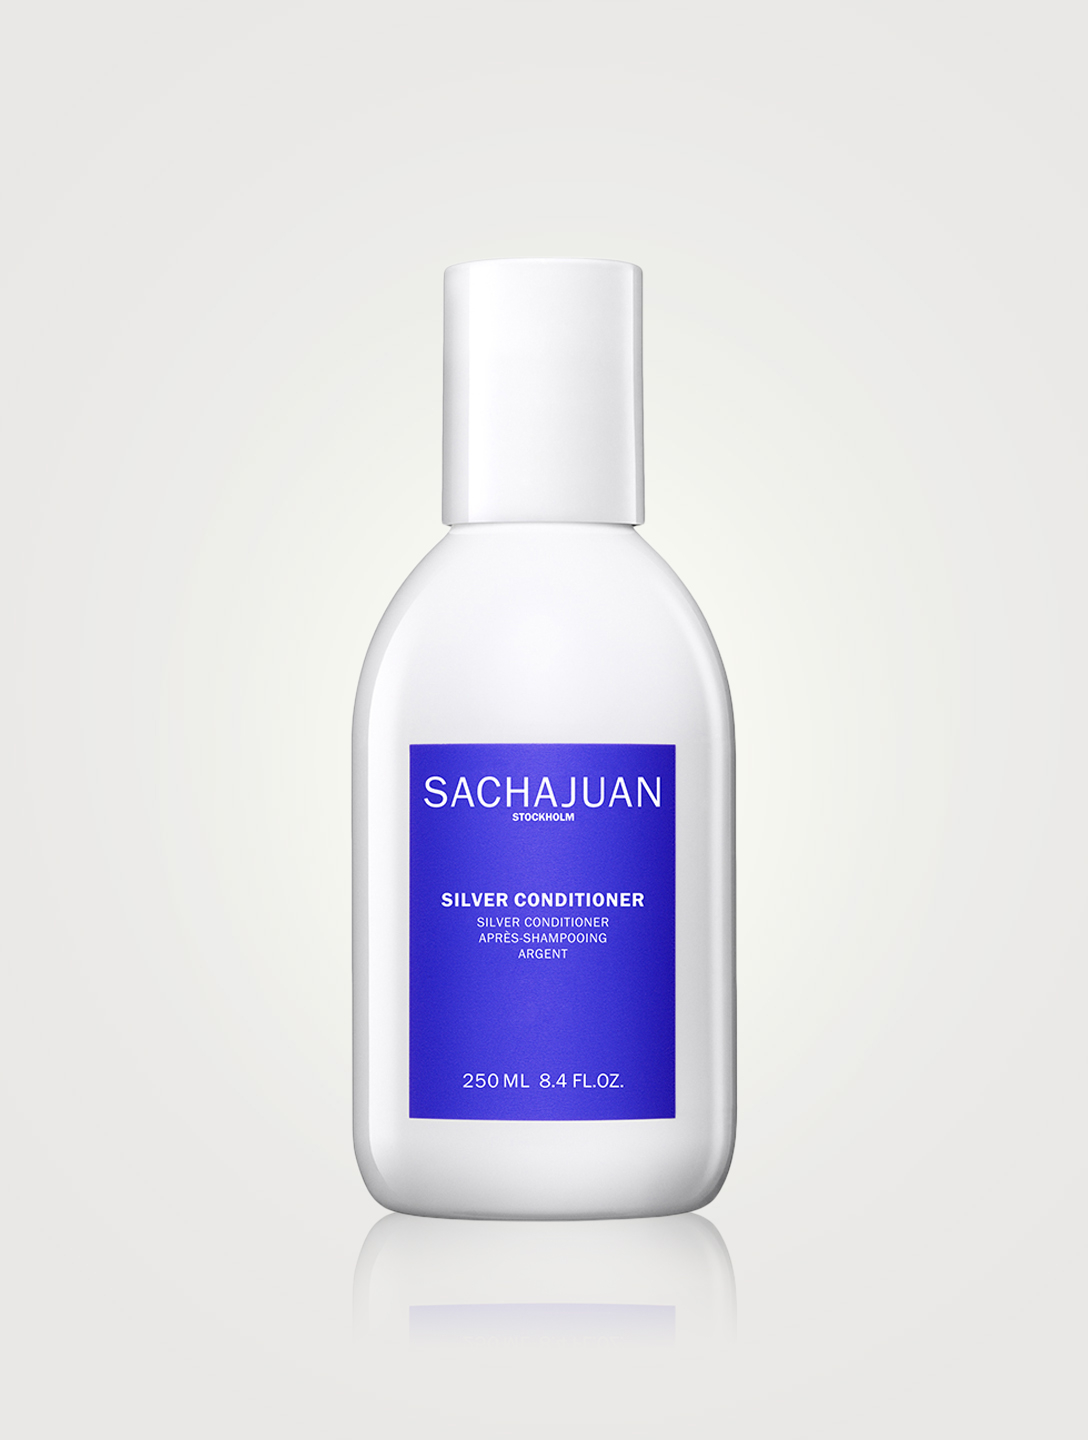 SACHAJUAN Silver Conditioner Beauty